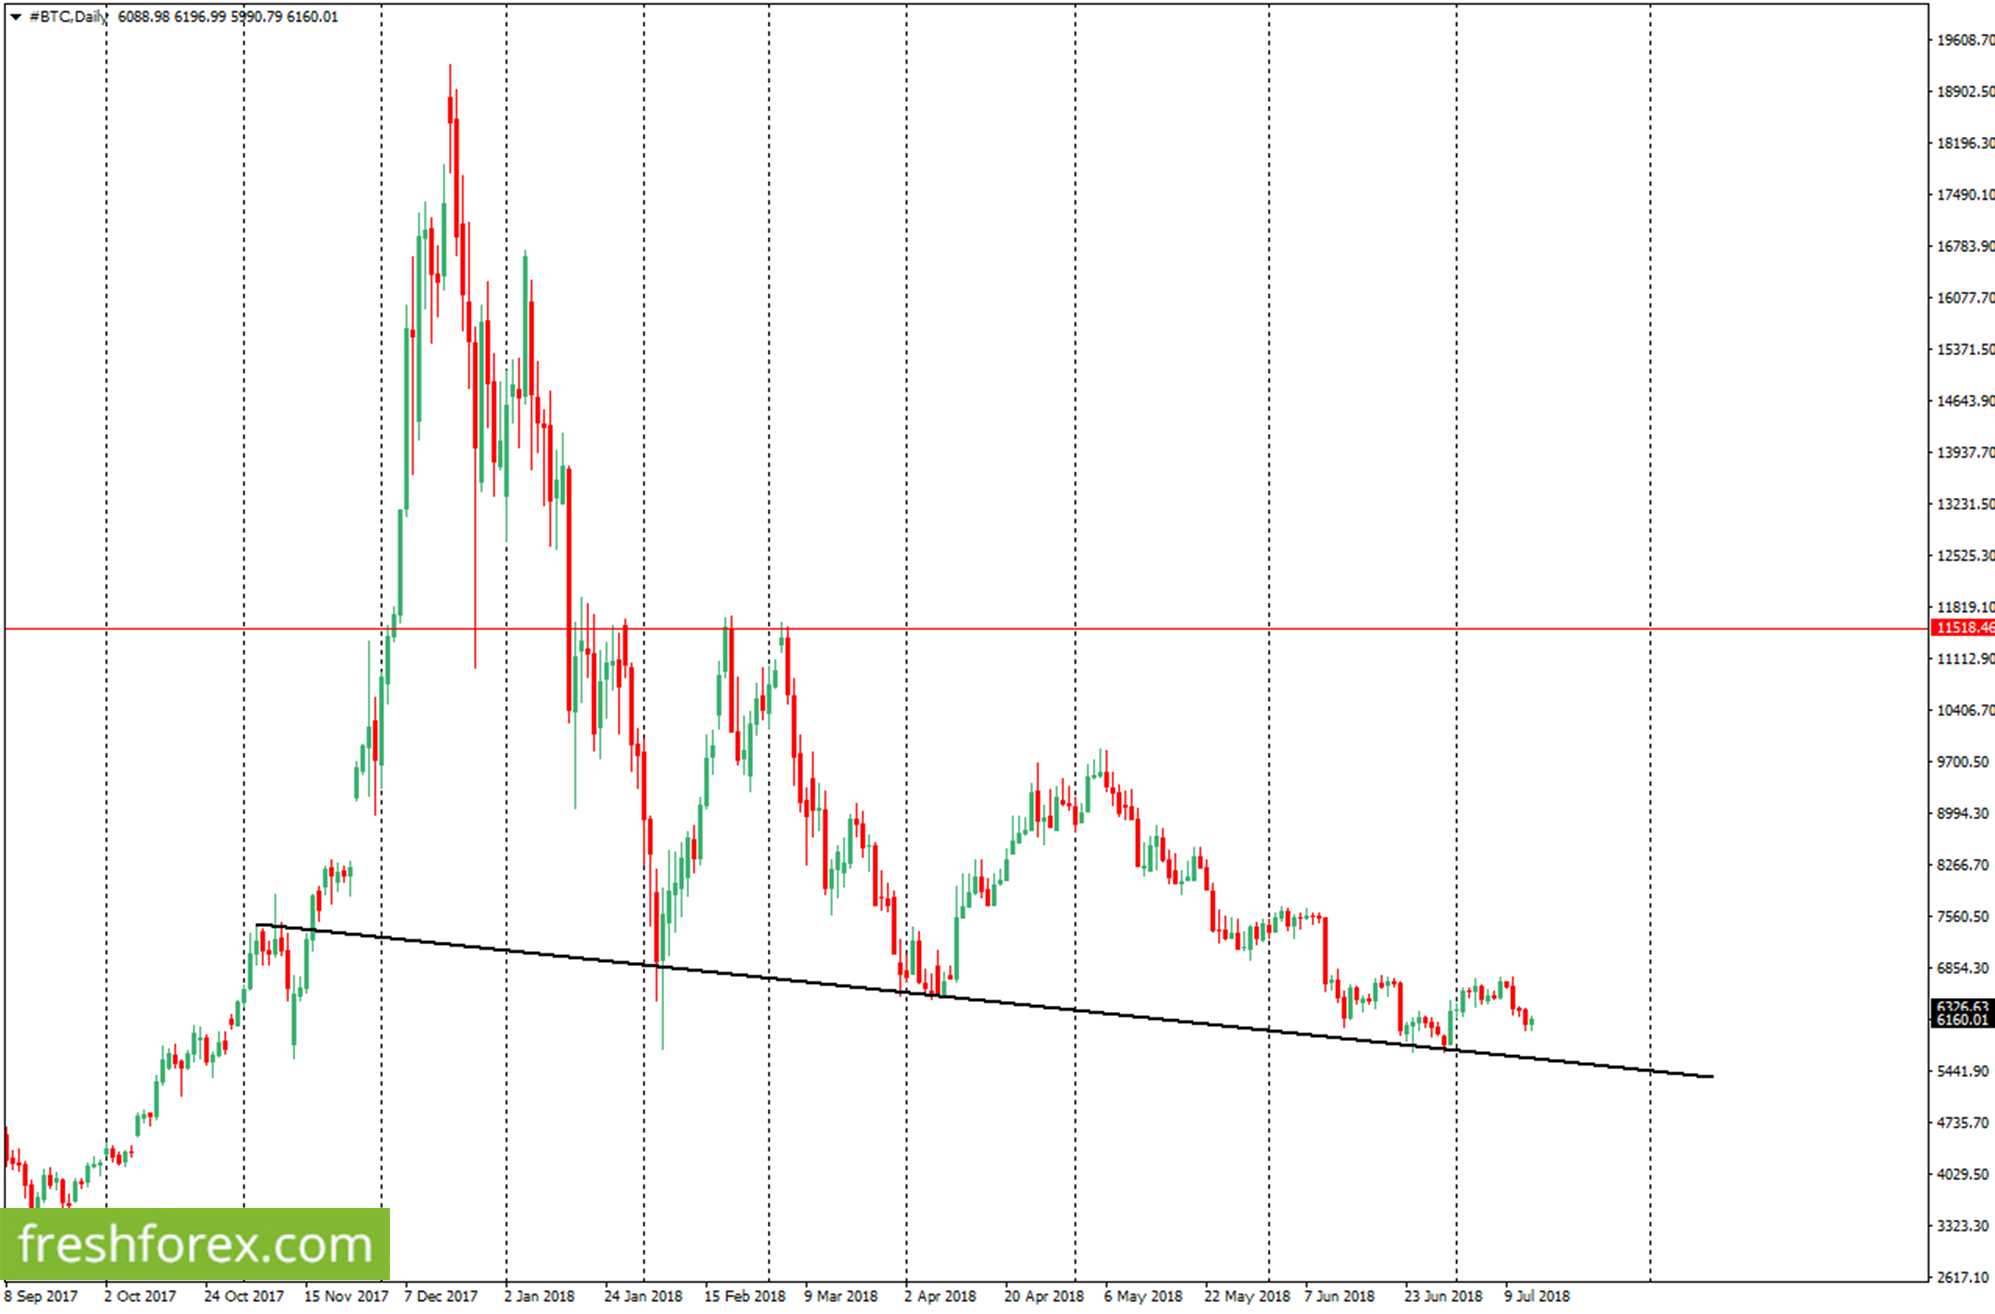 Buy BTC upon a rebound from the supportive trendline